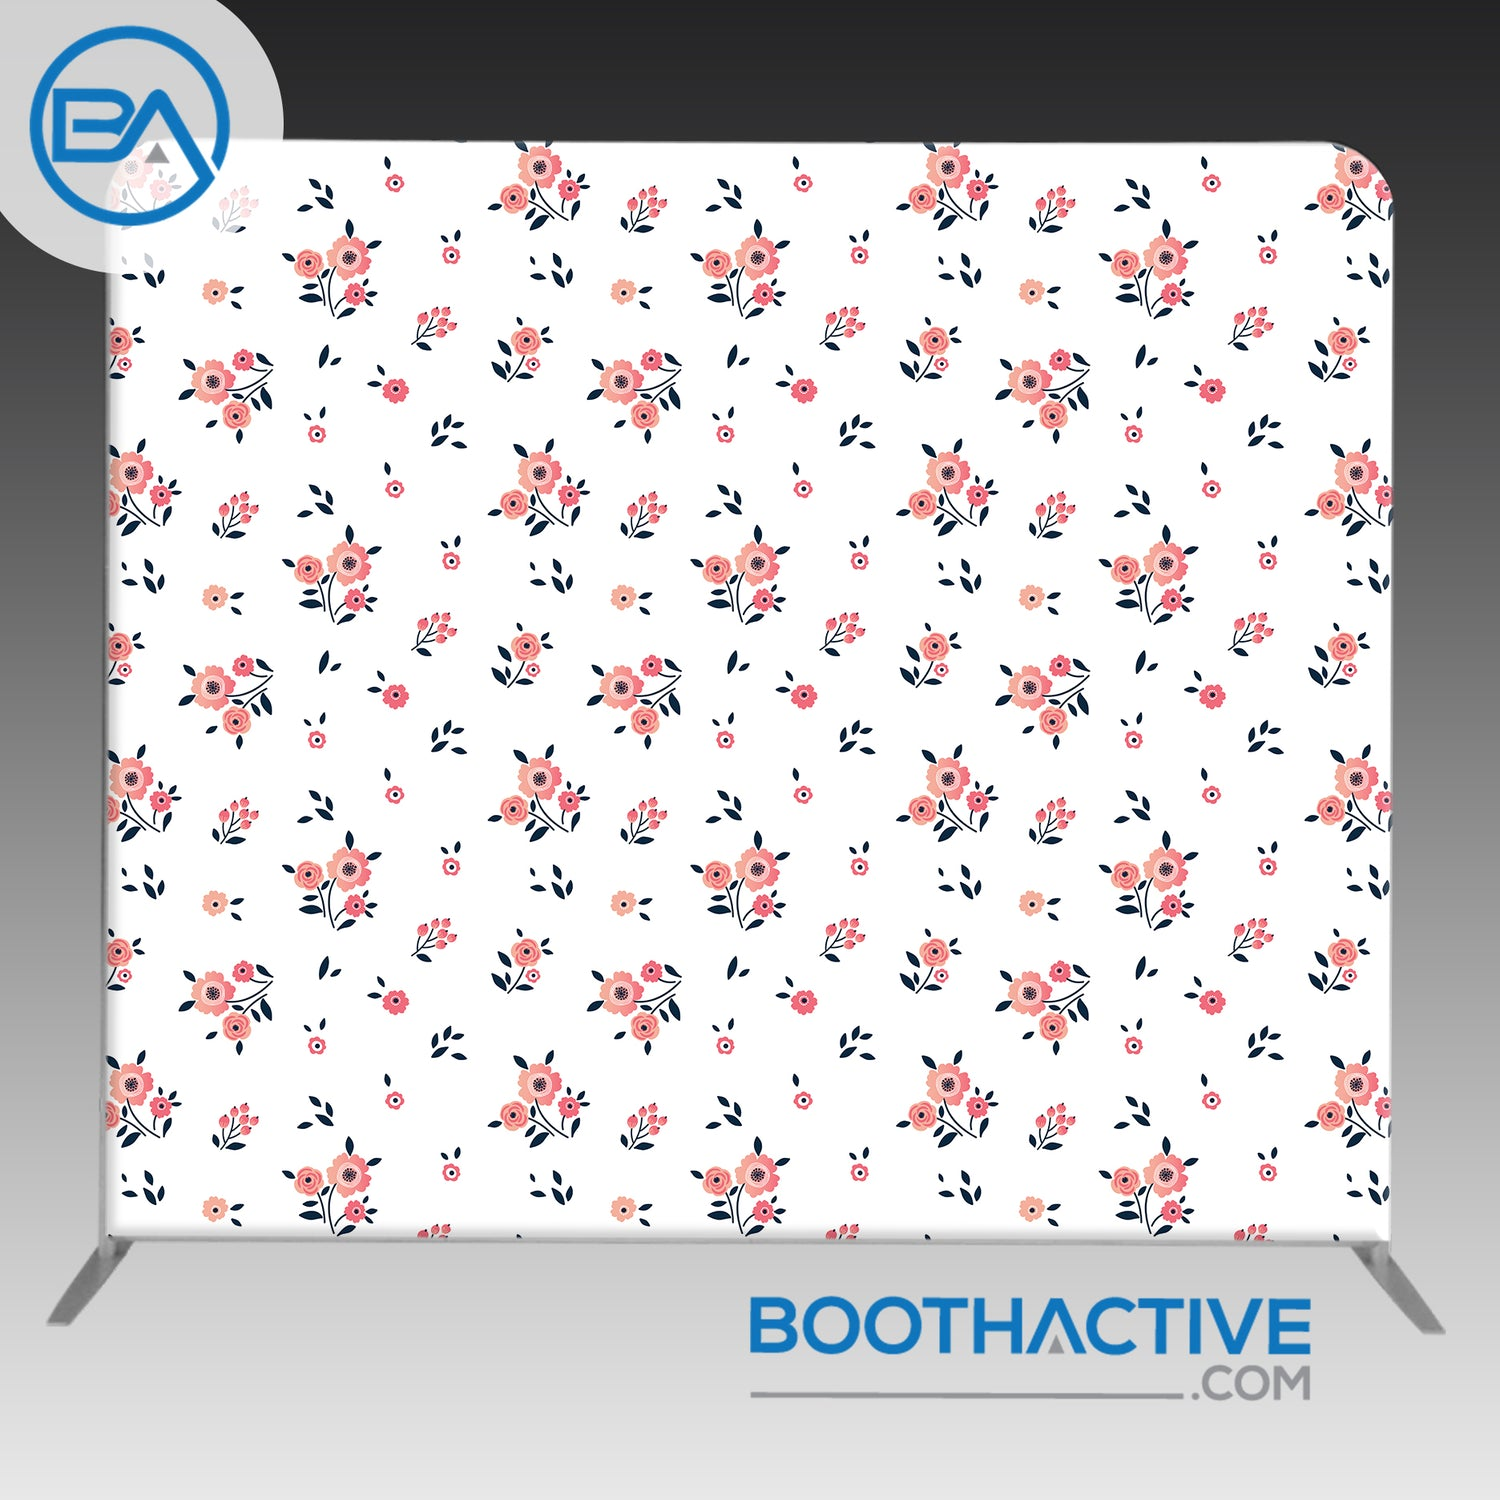 8' x 8' Backdrop - Flowers - Small Flowers - BoothActive